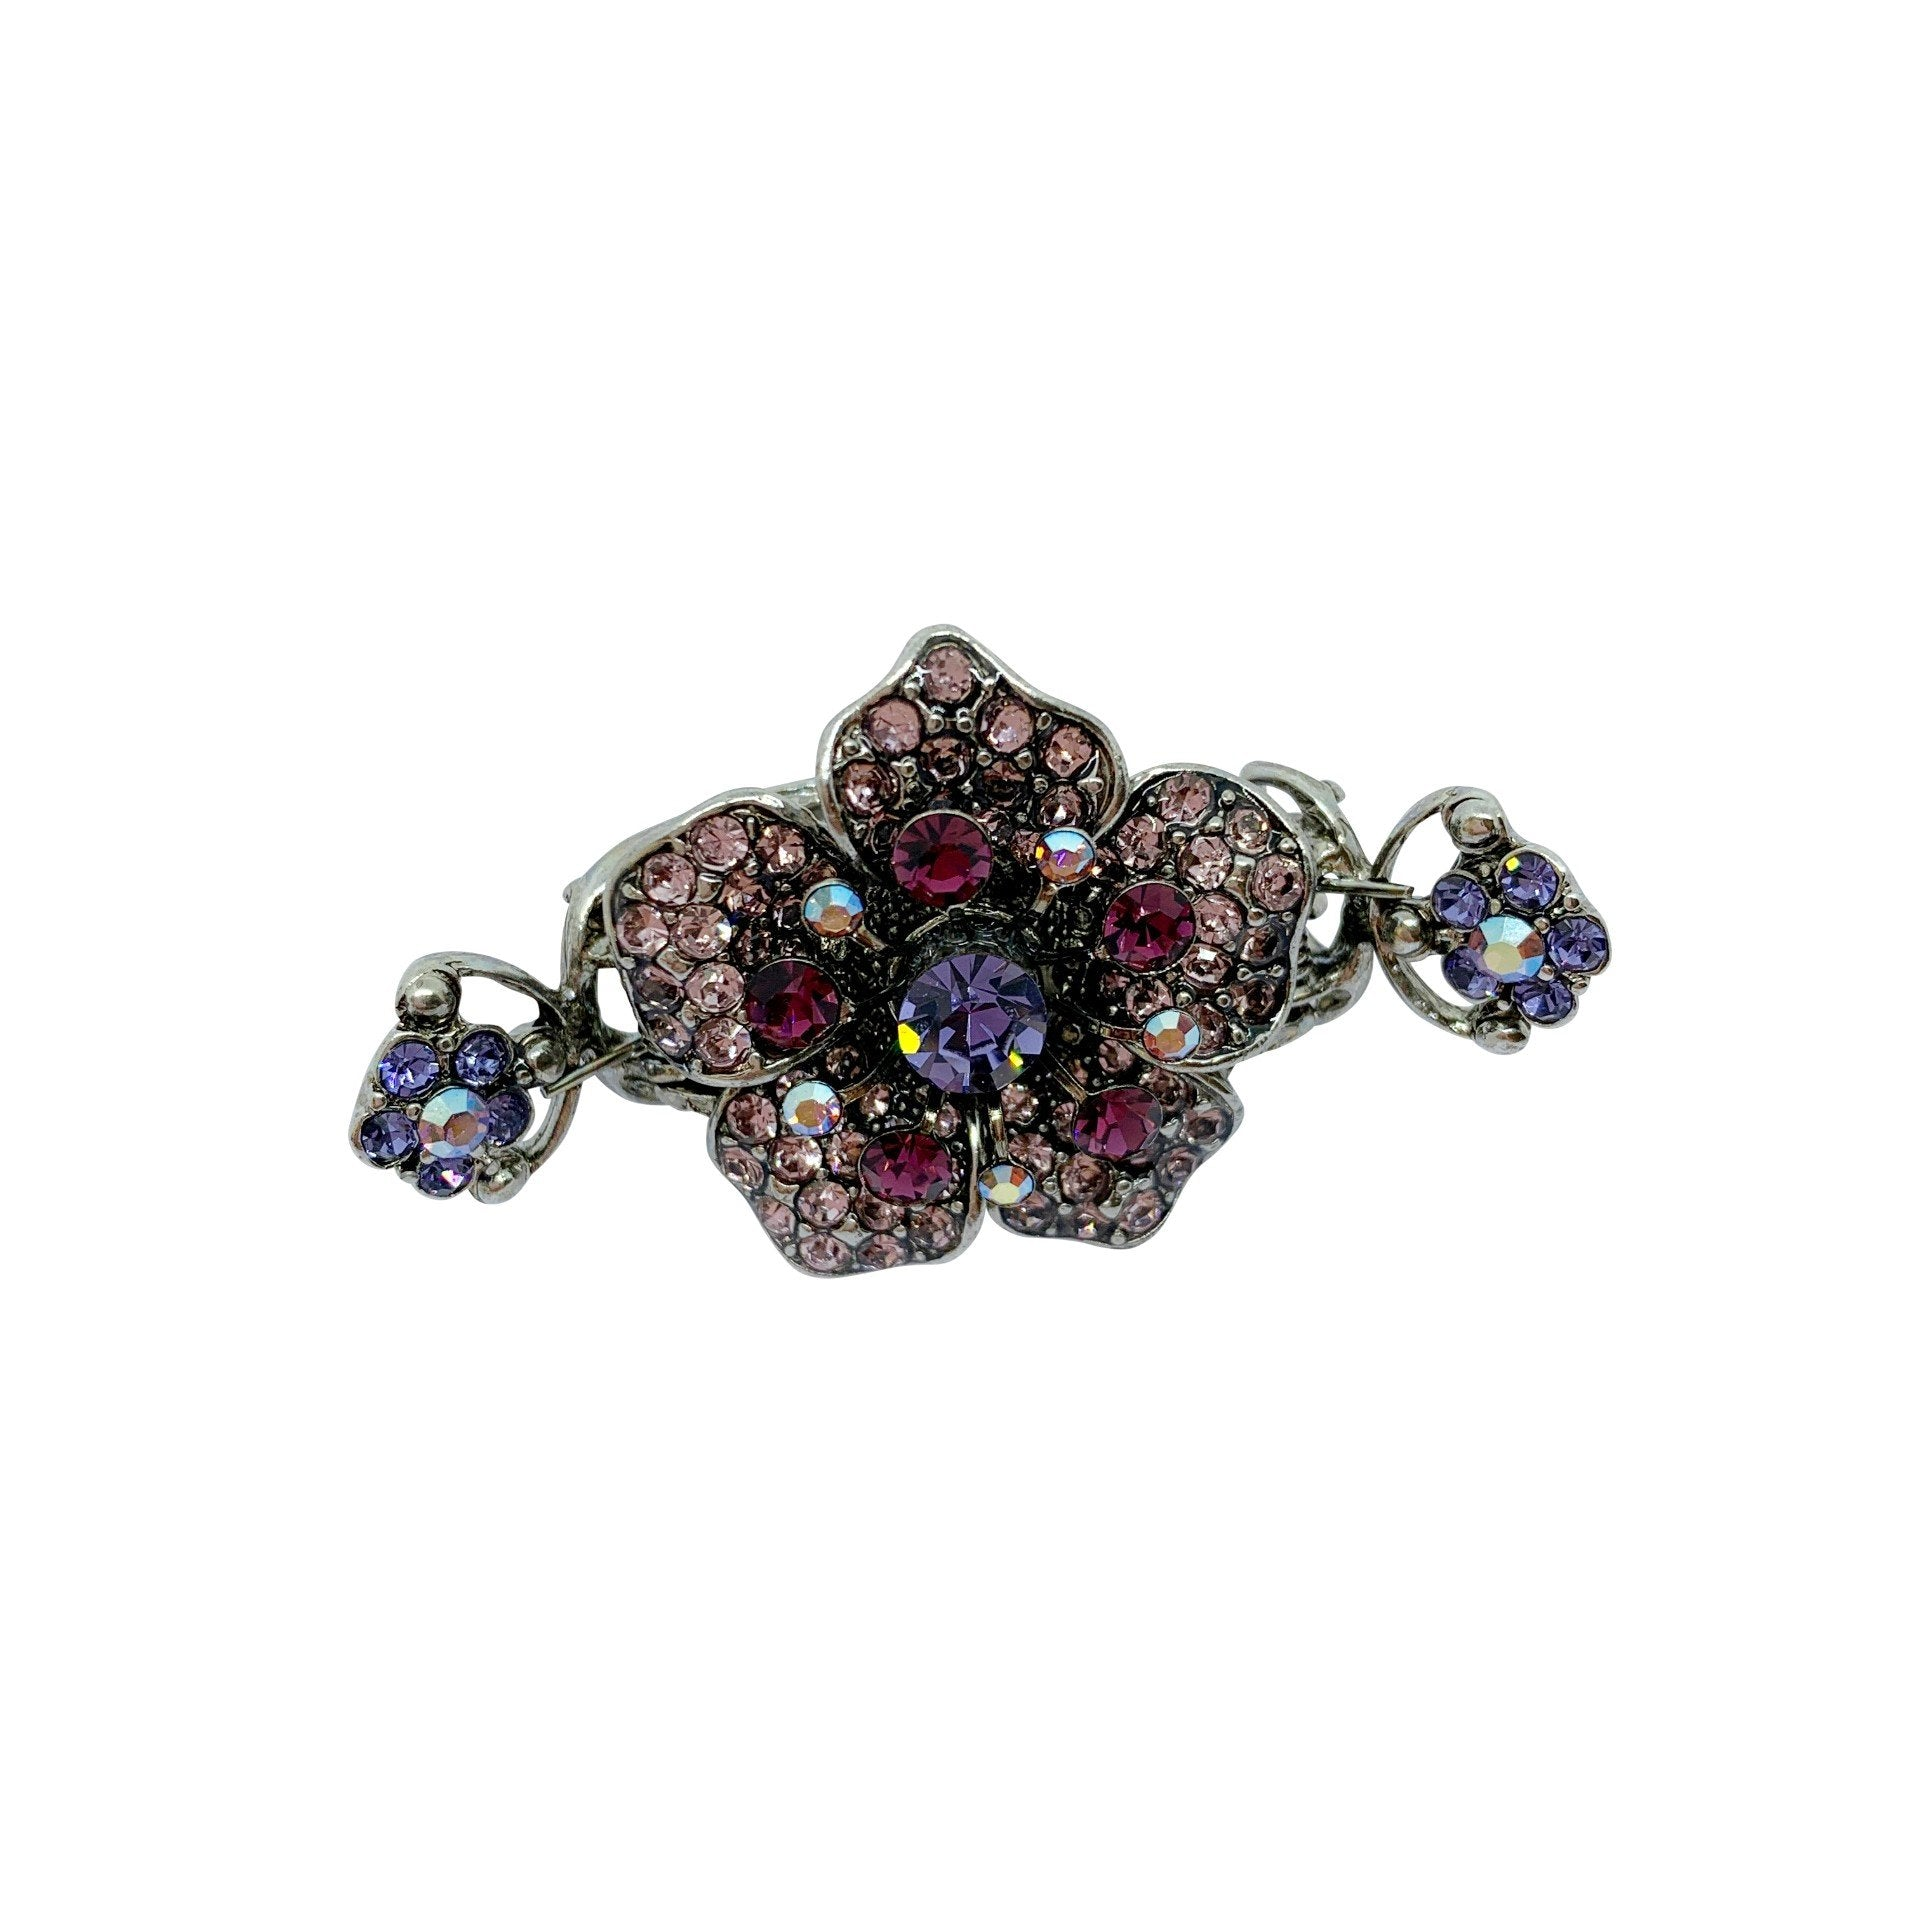 Small Swarovski Crystal Flower Hair Claw - Swarovski Crystal - Hair Claw - Tegen Accessories - Purple